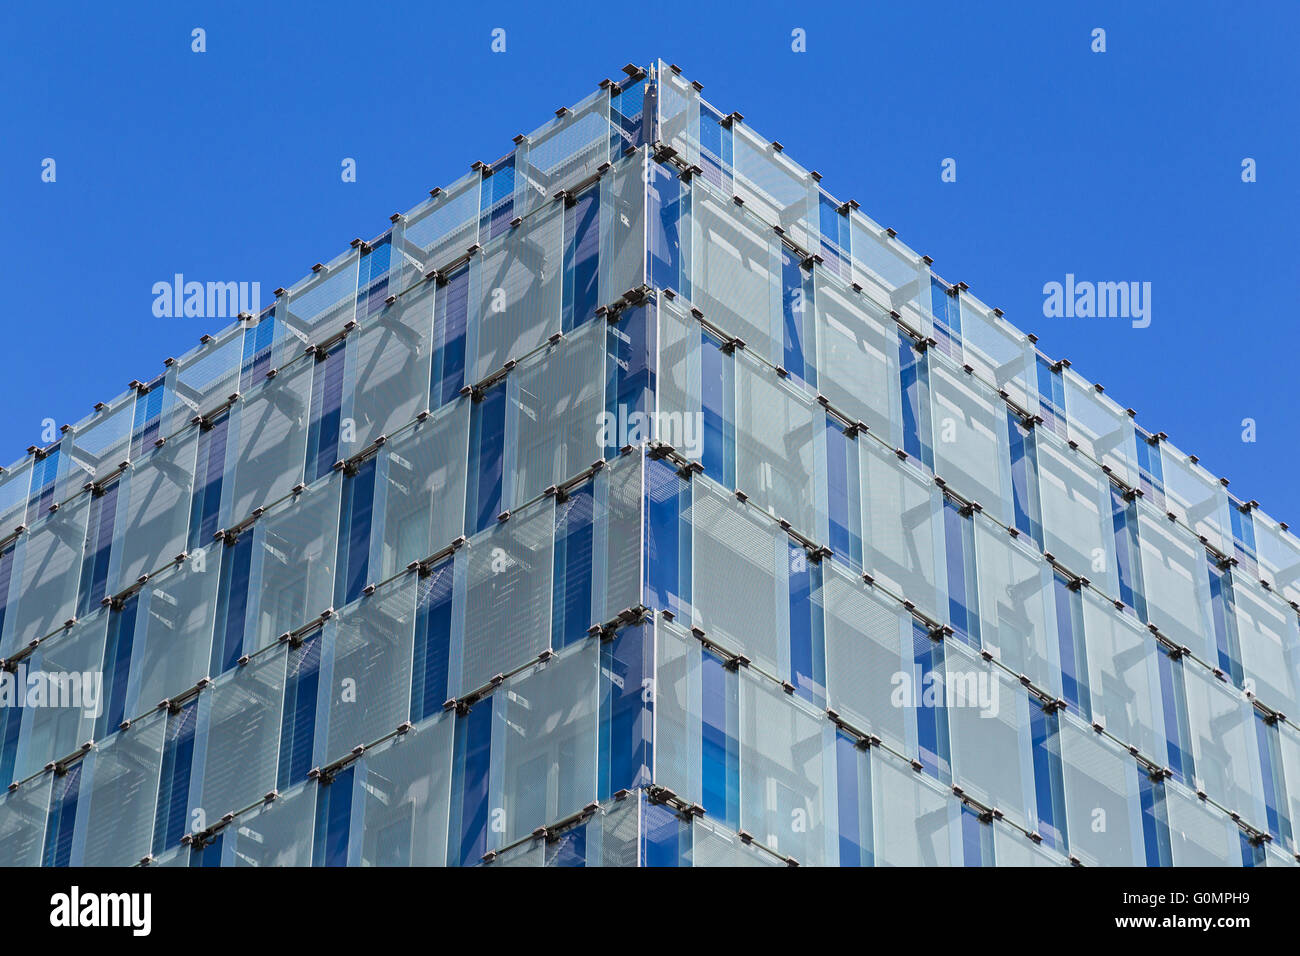 One of the corners of the Walker Building in Liverpool which makes up part of the University Of Liverpool campus. - Stock Image